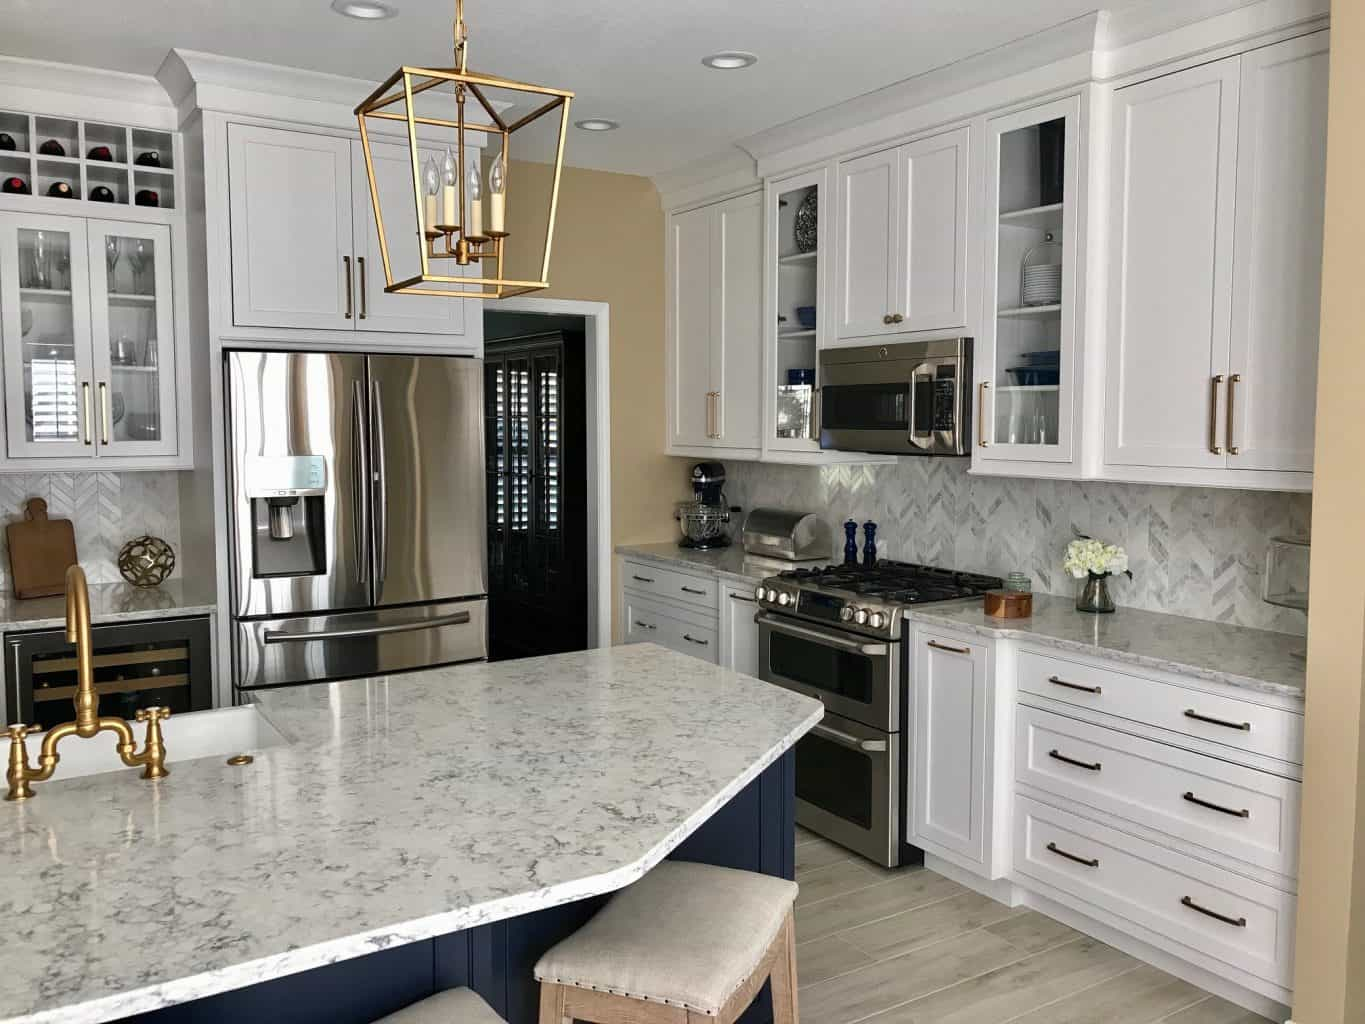 The Golden Touch | Standard Kitchen and Bath | Knoxville, TN ...